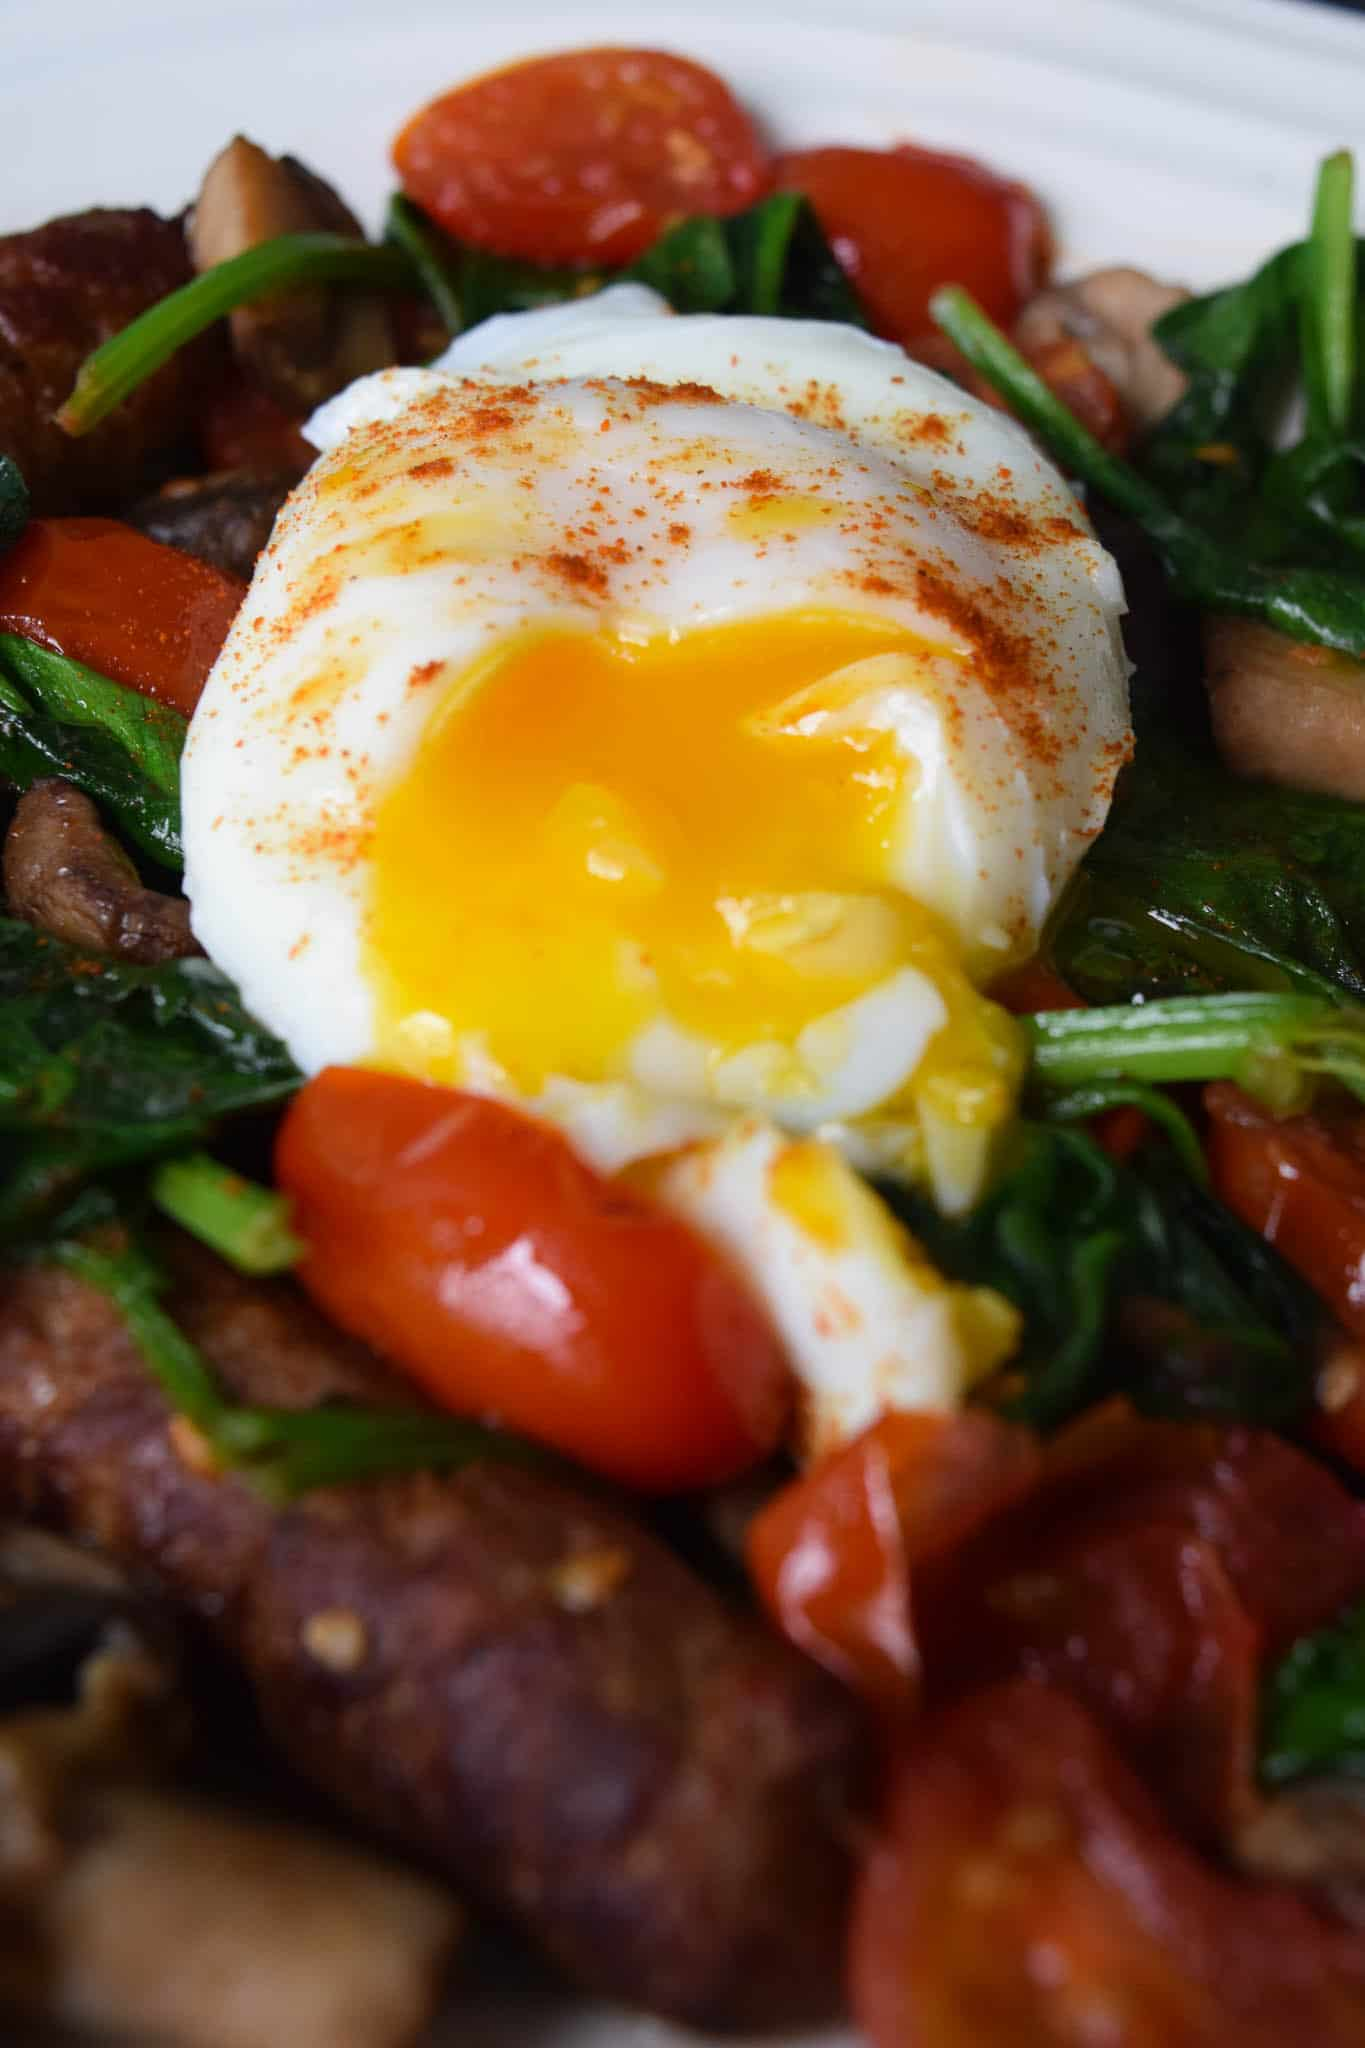 Poached Eggs Over Chicken Sausage and Veggies